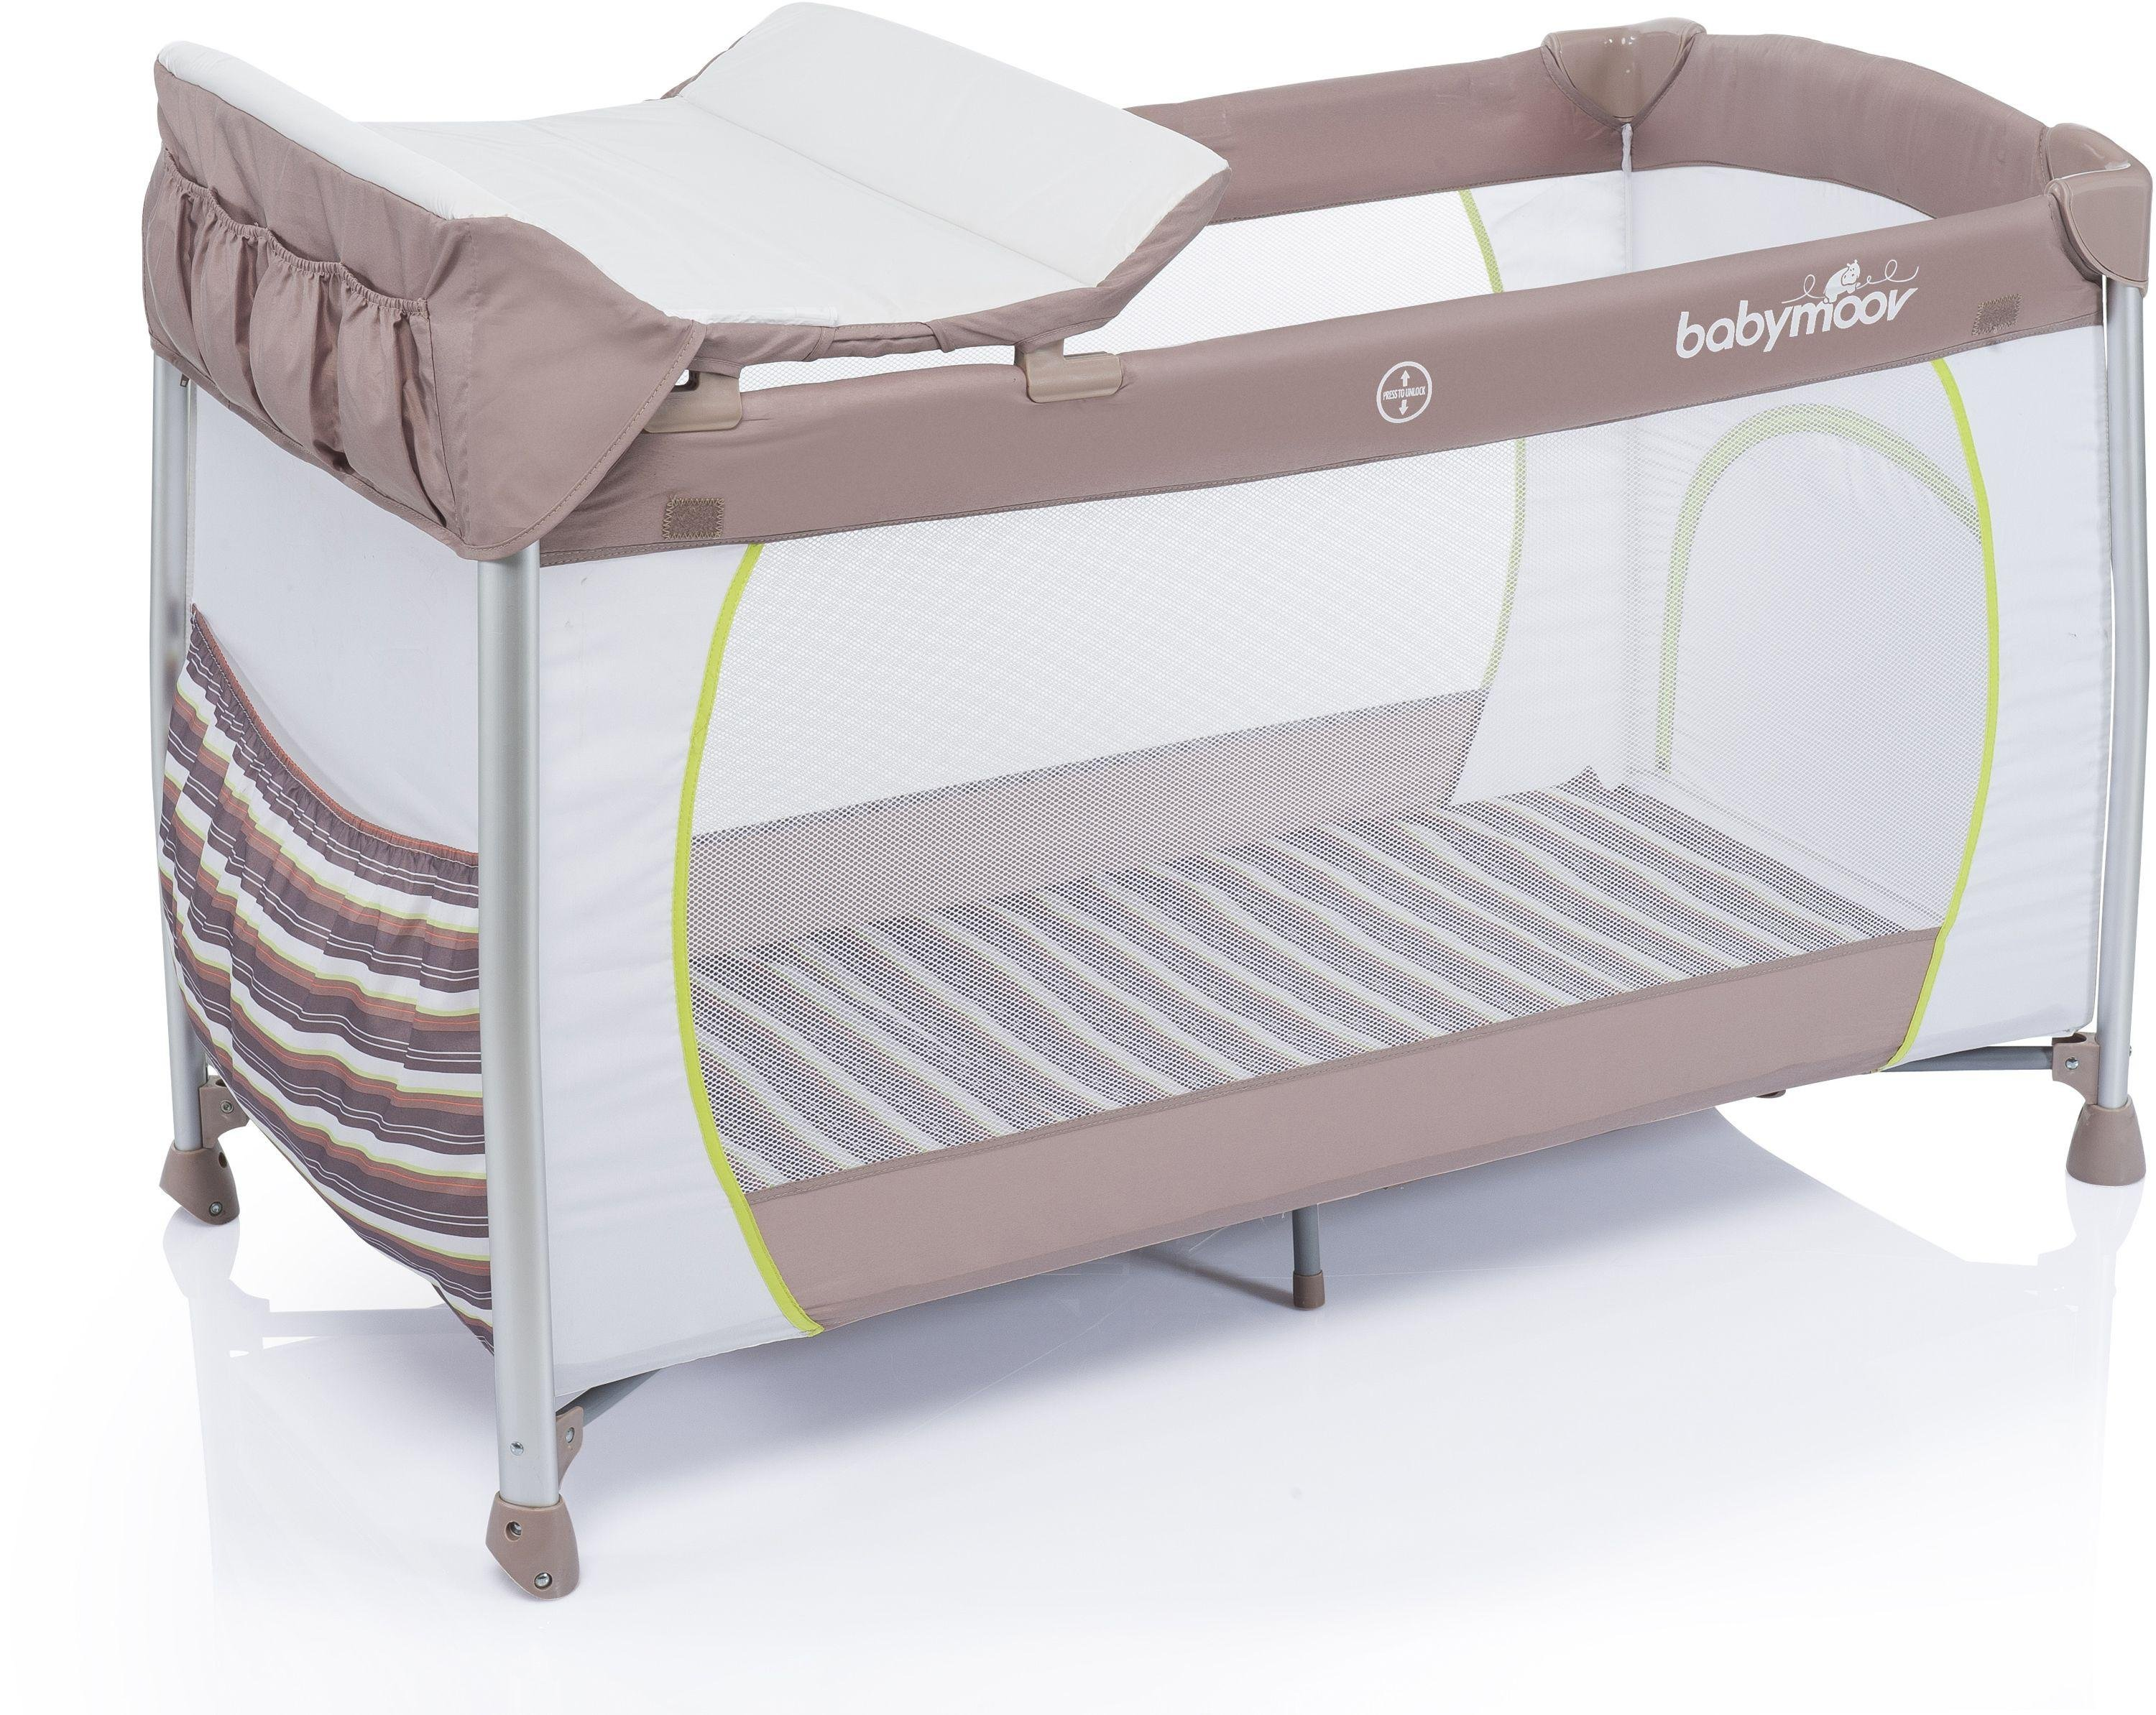 Image of Babymoov - Curve Dream - Travel - Cot - Taupe and Almond